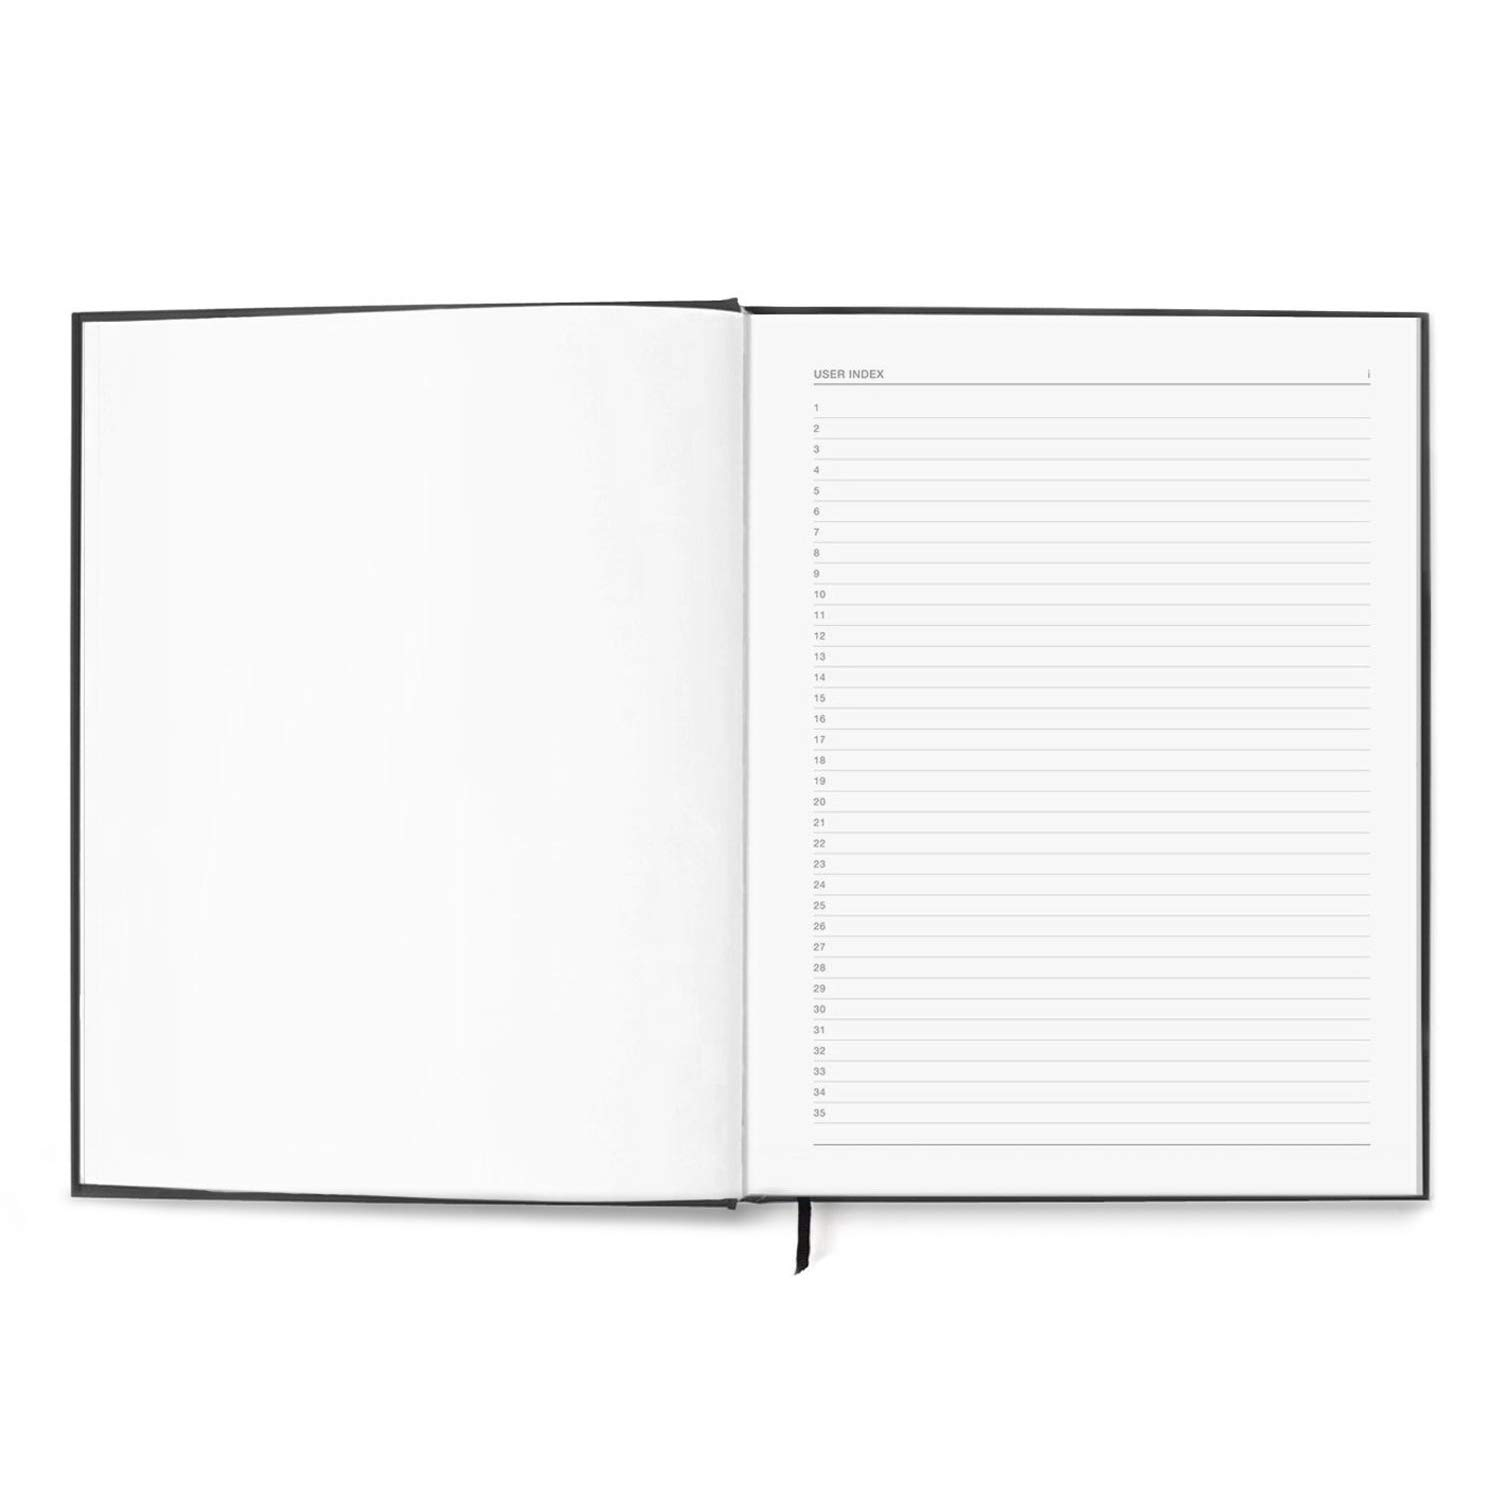 144 Pages 9.25 x 11.75 inches Vela Sciences Advanced DuraCover Lab Notebook Dot Grid, 1-Pack